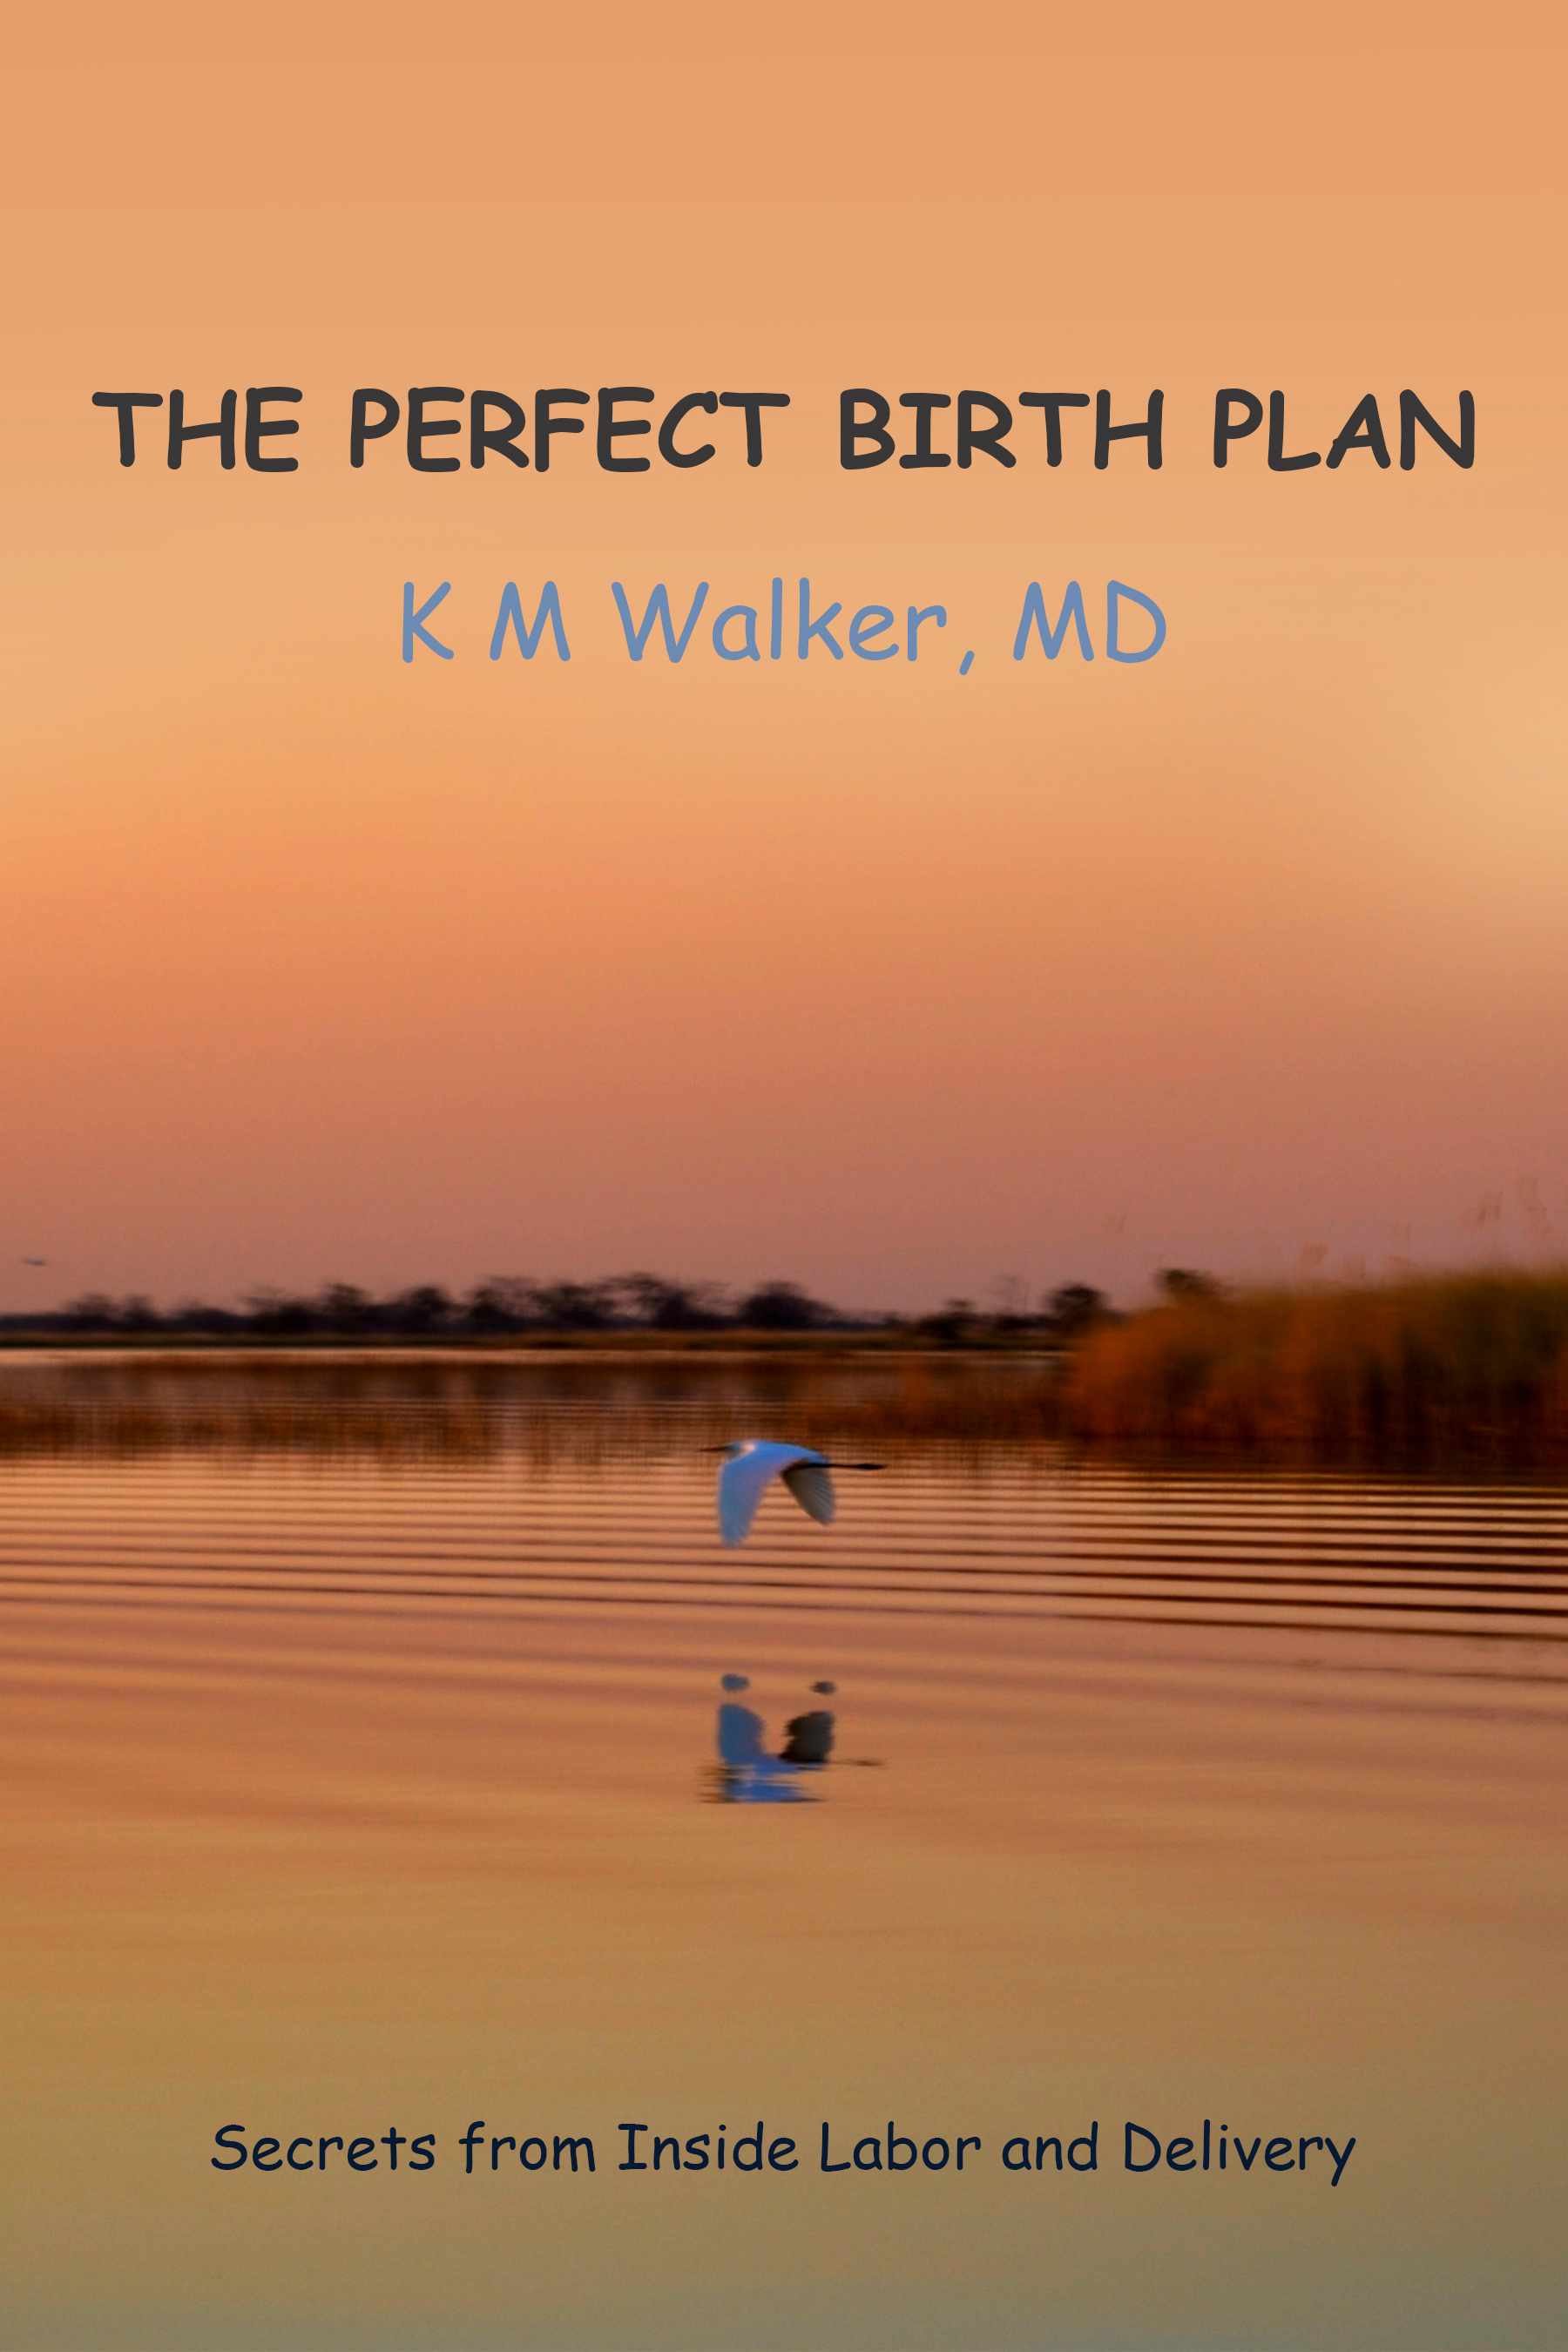 The Perfect Birth Plan: Patient Handout